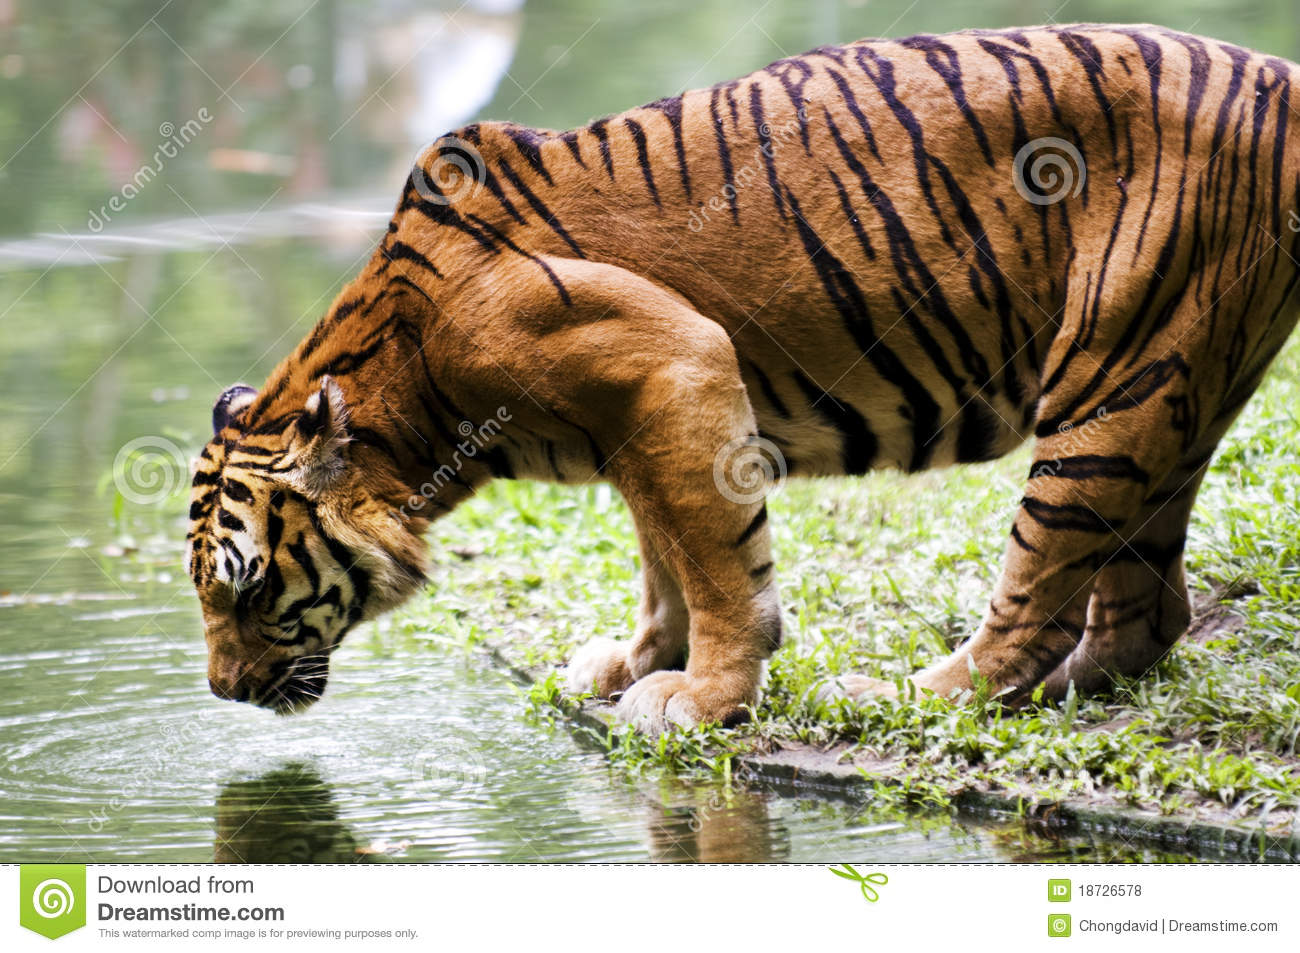 Animals Drinking Water Images